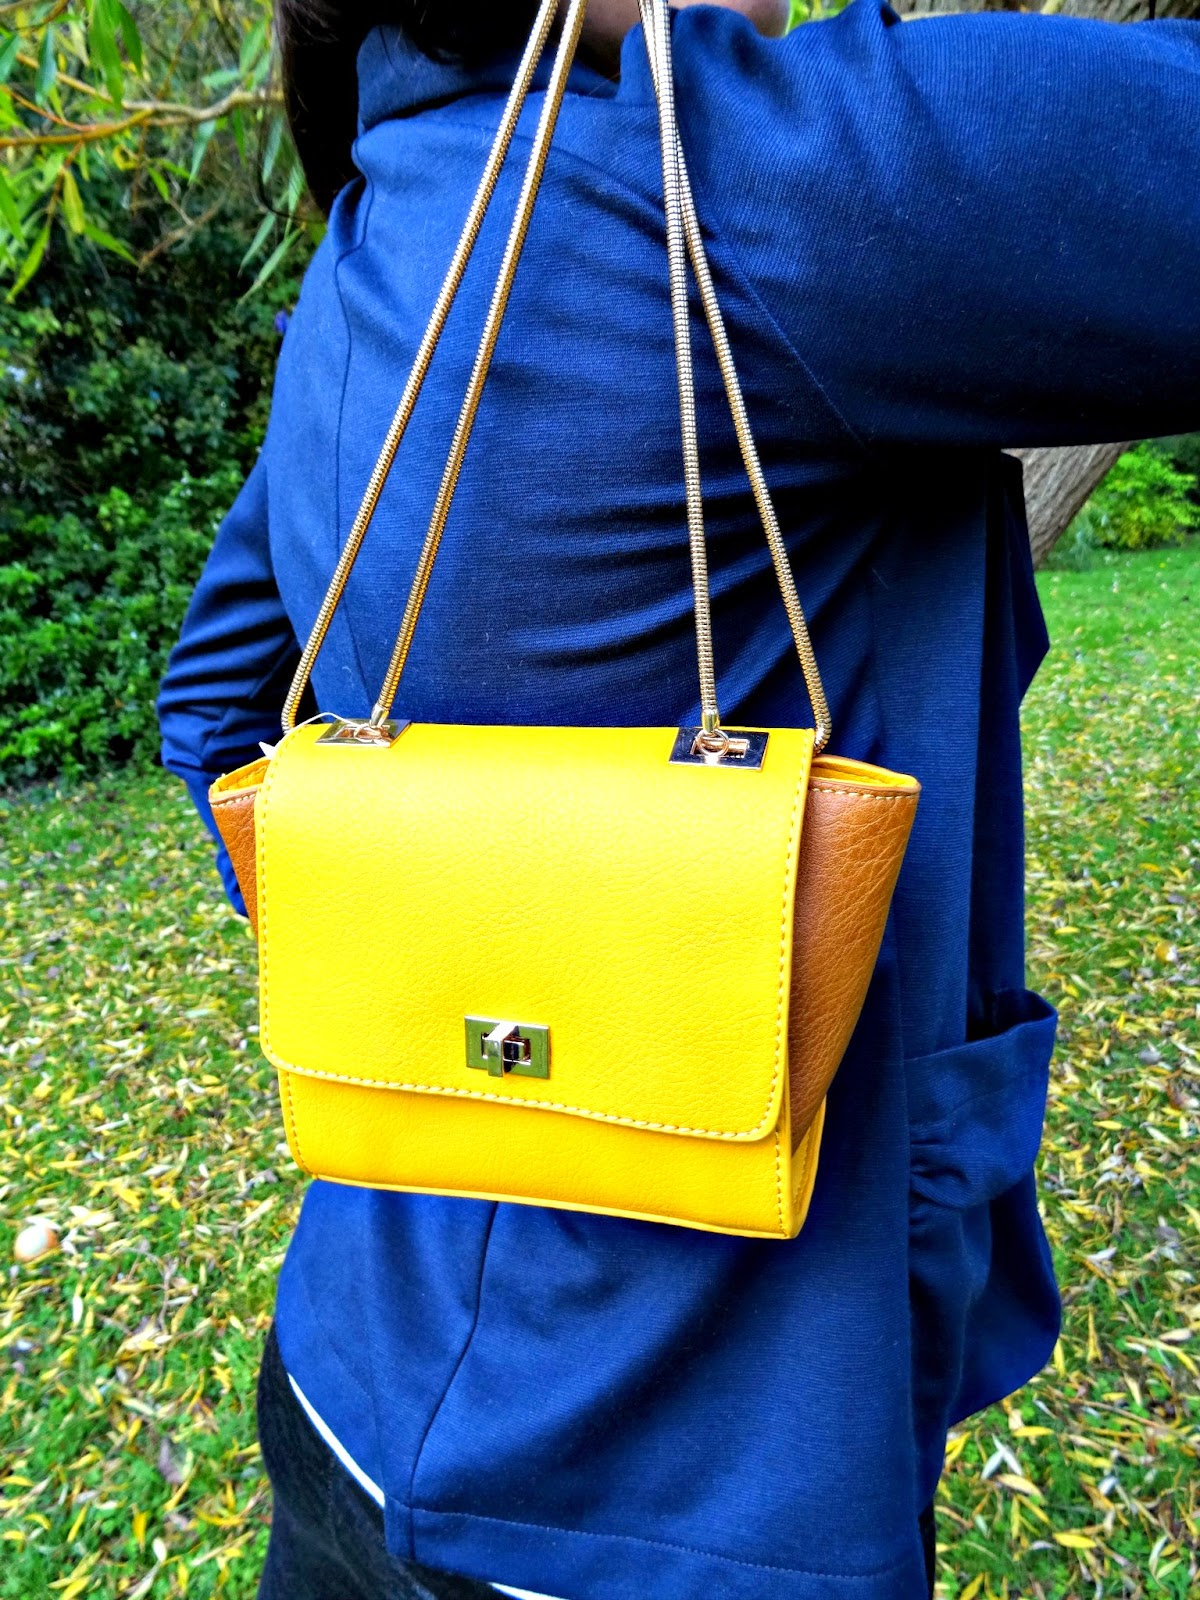 Autumn fashion ootd with mini handbag and blazer